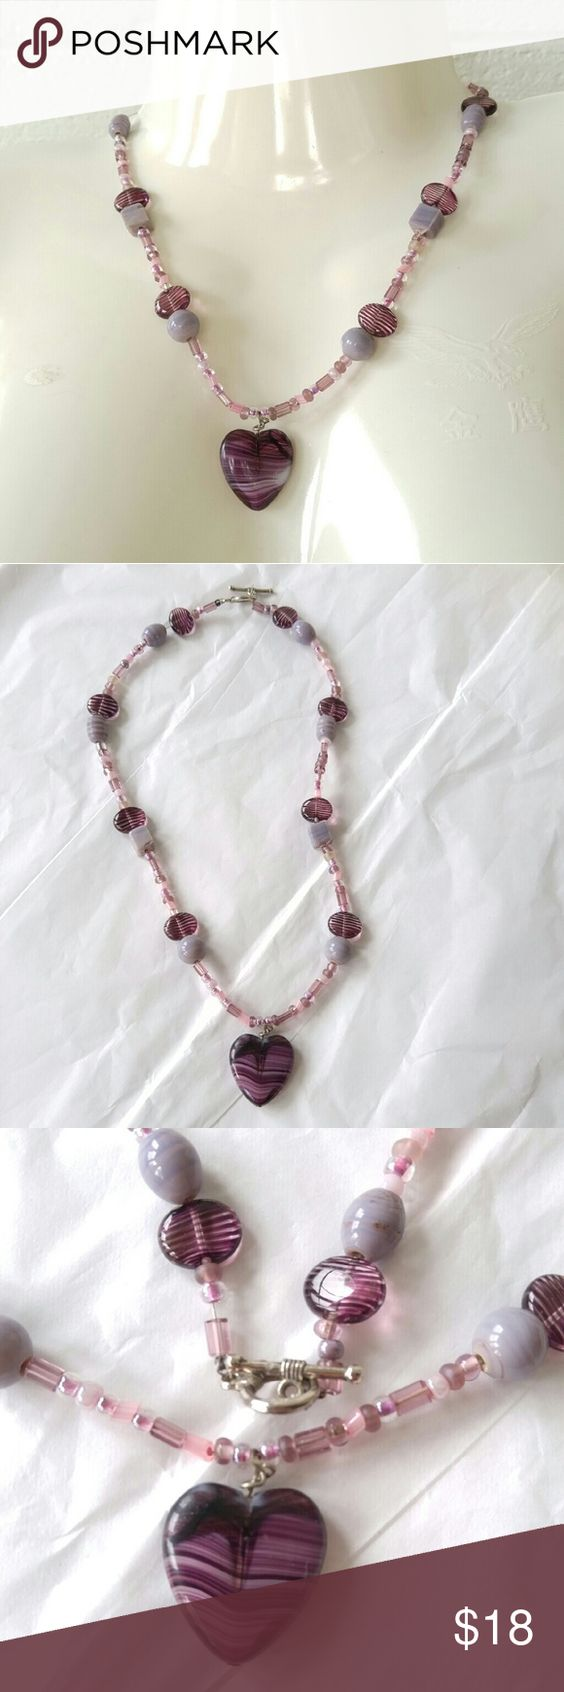 Handmade heart beaded necklace purple stones Beautiful beaded necklace with purple striped heart pendant on a chain of stone and glass beads in purple, pale gray blue, and pink. Silver tone toggle clasp. Strung on strong bead wire. Handmade by unknown artisan. From a smoke free home :)  SUNB8817HEART888 Handmade Jewelry Necklaces